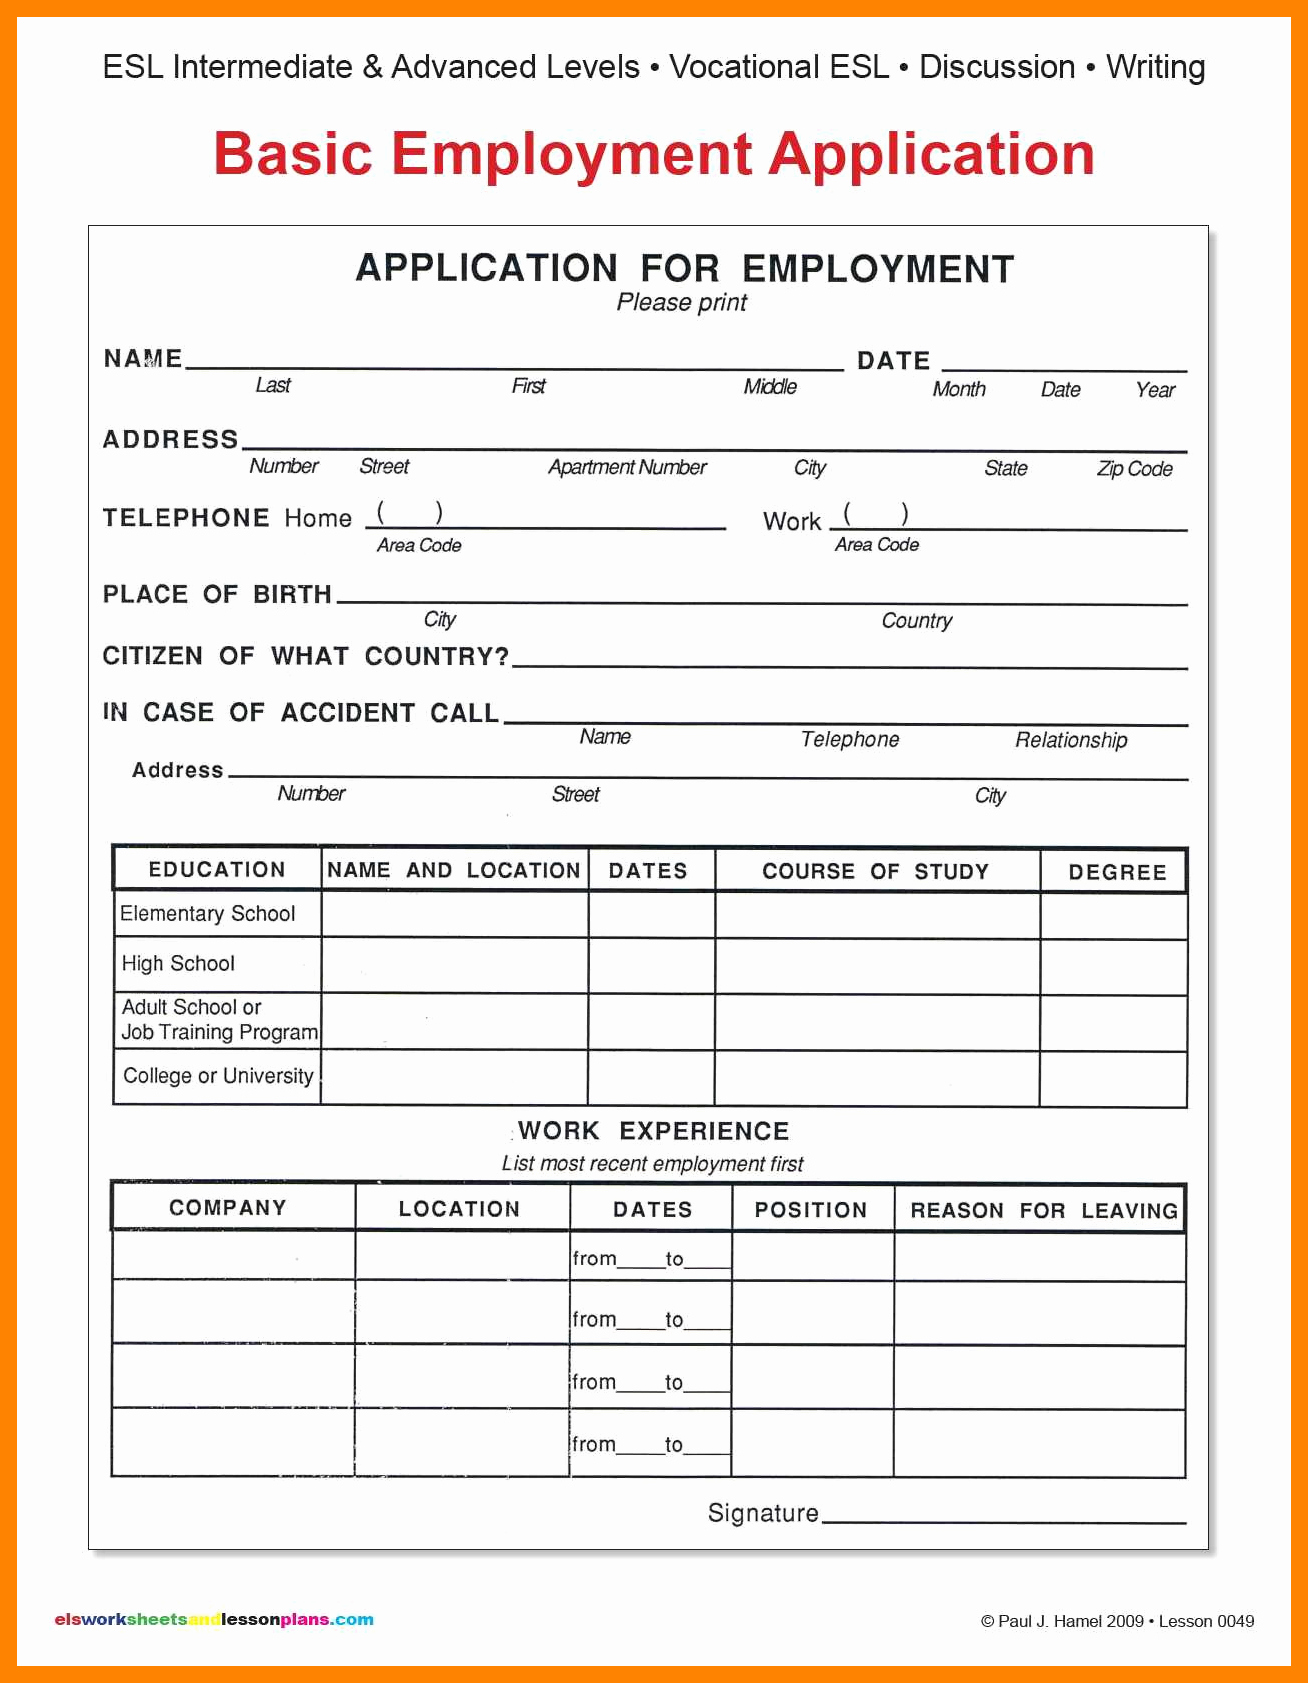 Simple Job Application Fresh Basic Job Application form